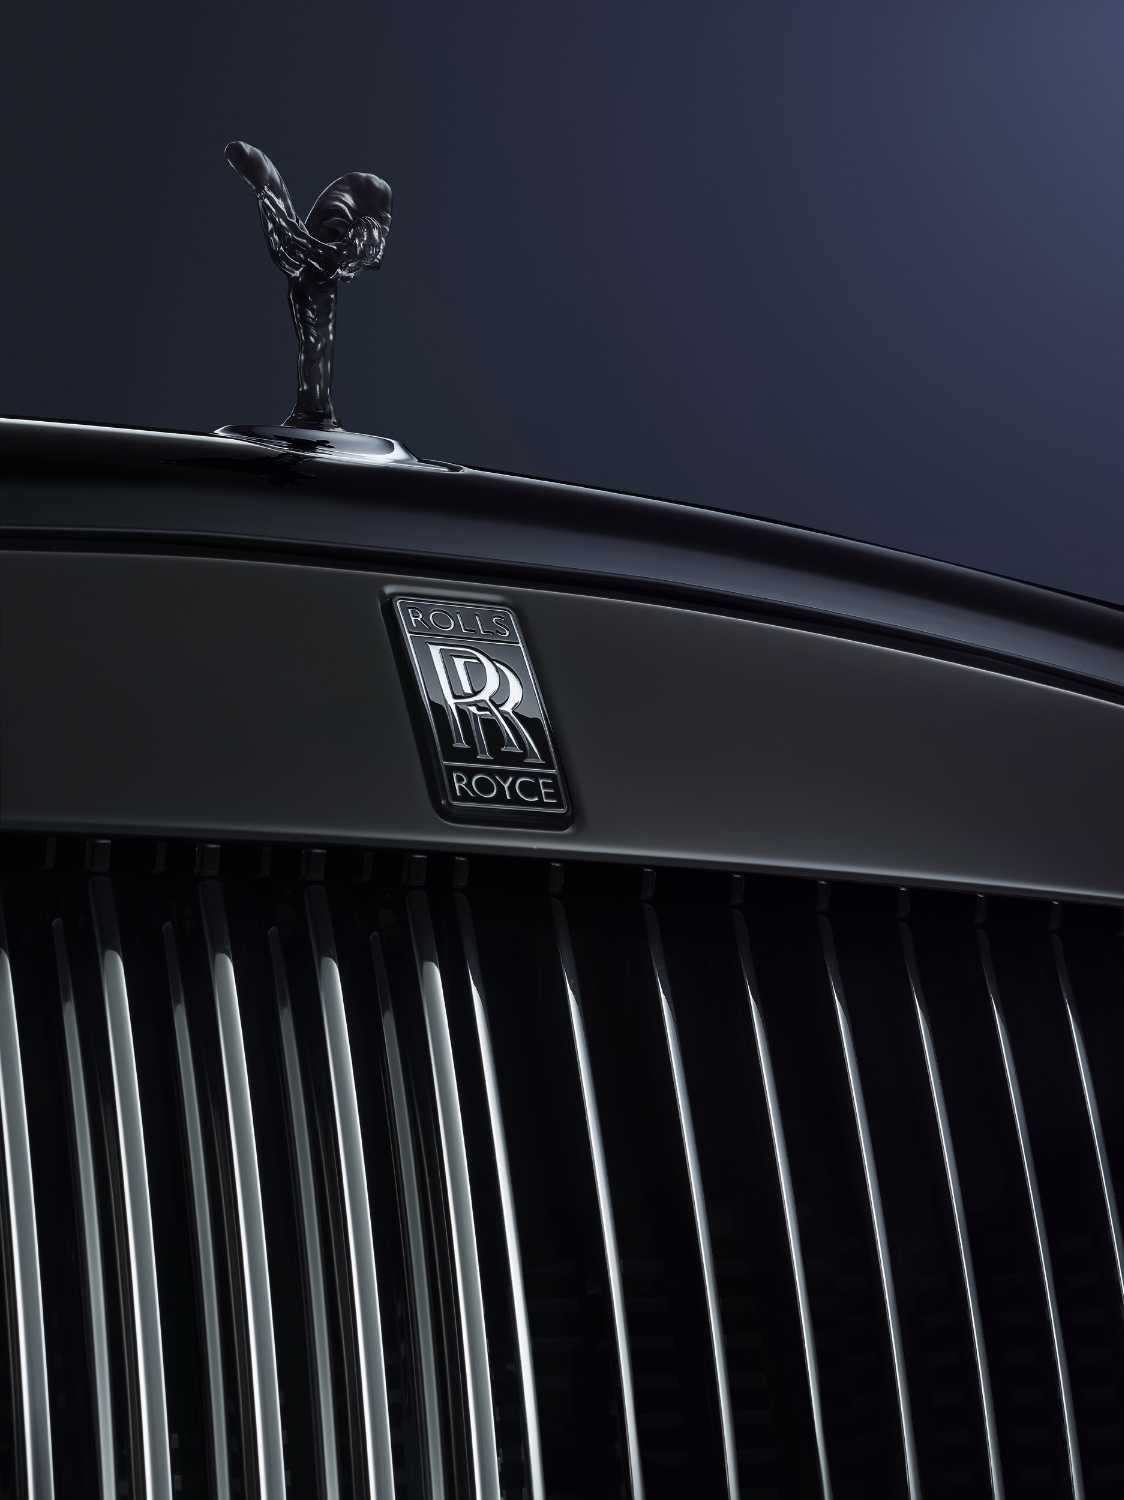 ROLLS-ROYCE MOTOR CARS' SPIRIT OF ECSTASY, BLACK BADGE AND PANTHEON GRILLE